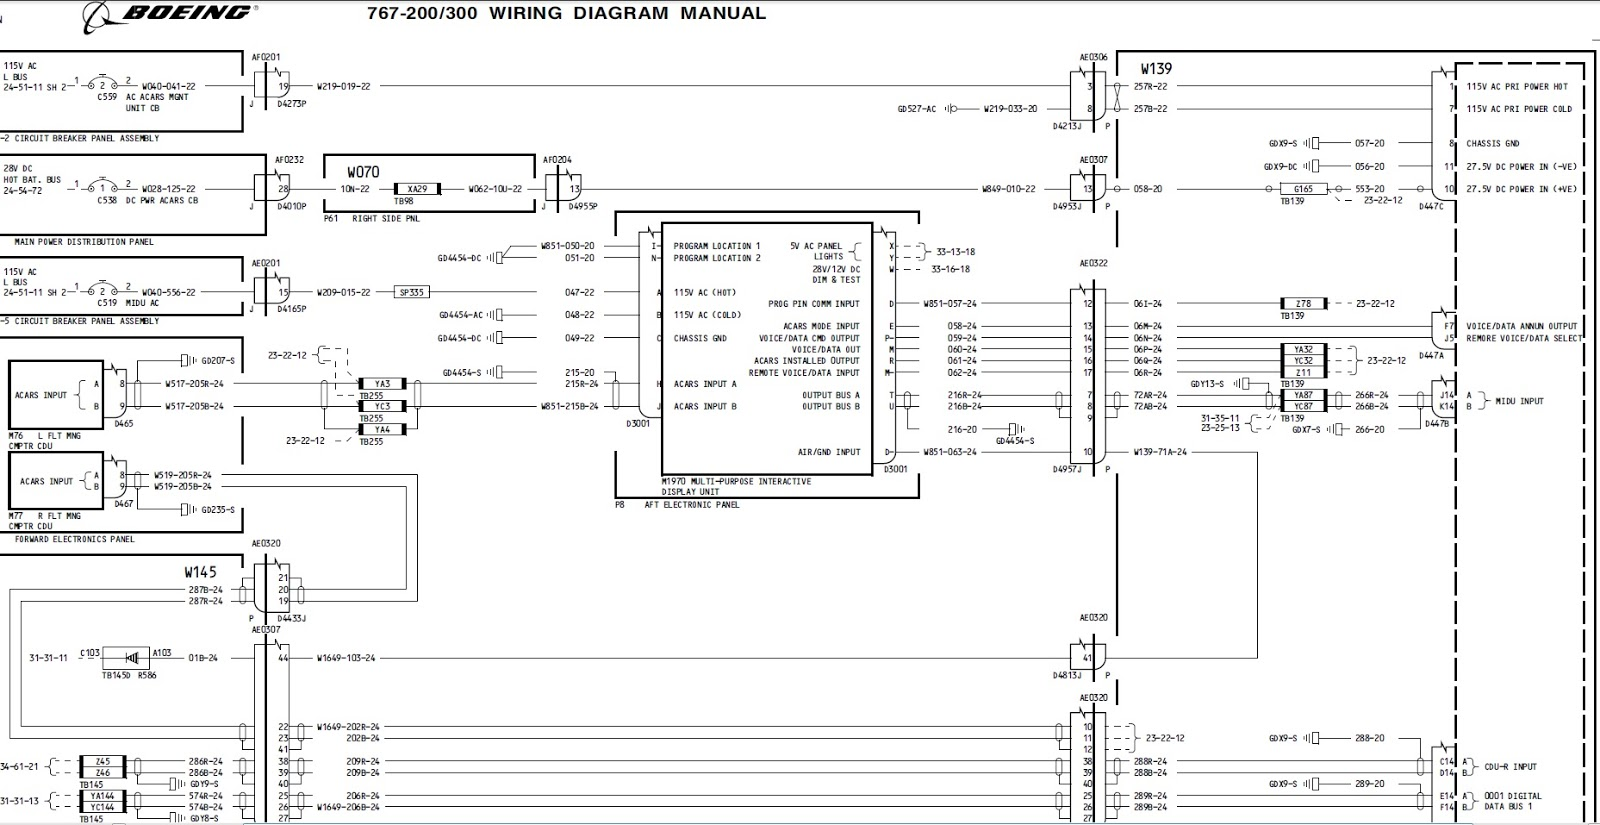 acars avionics wiring diagram accessories wiring diagram \u2022 wiring  at fashall.co